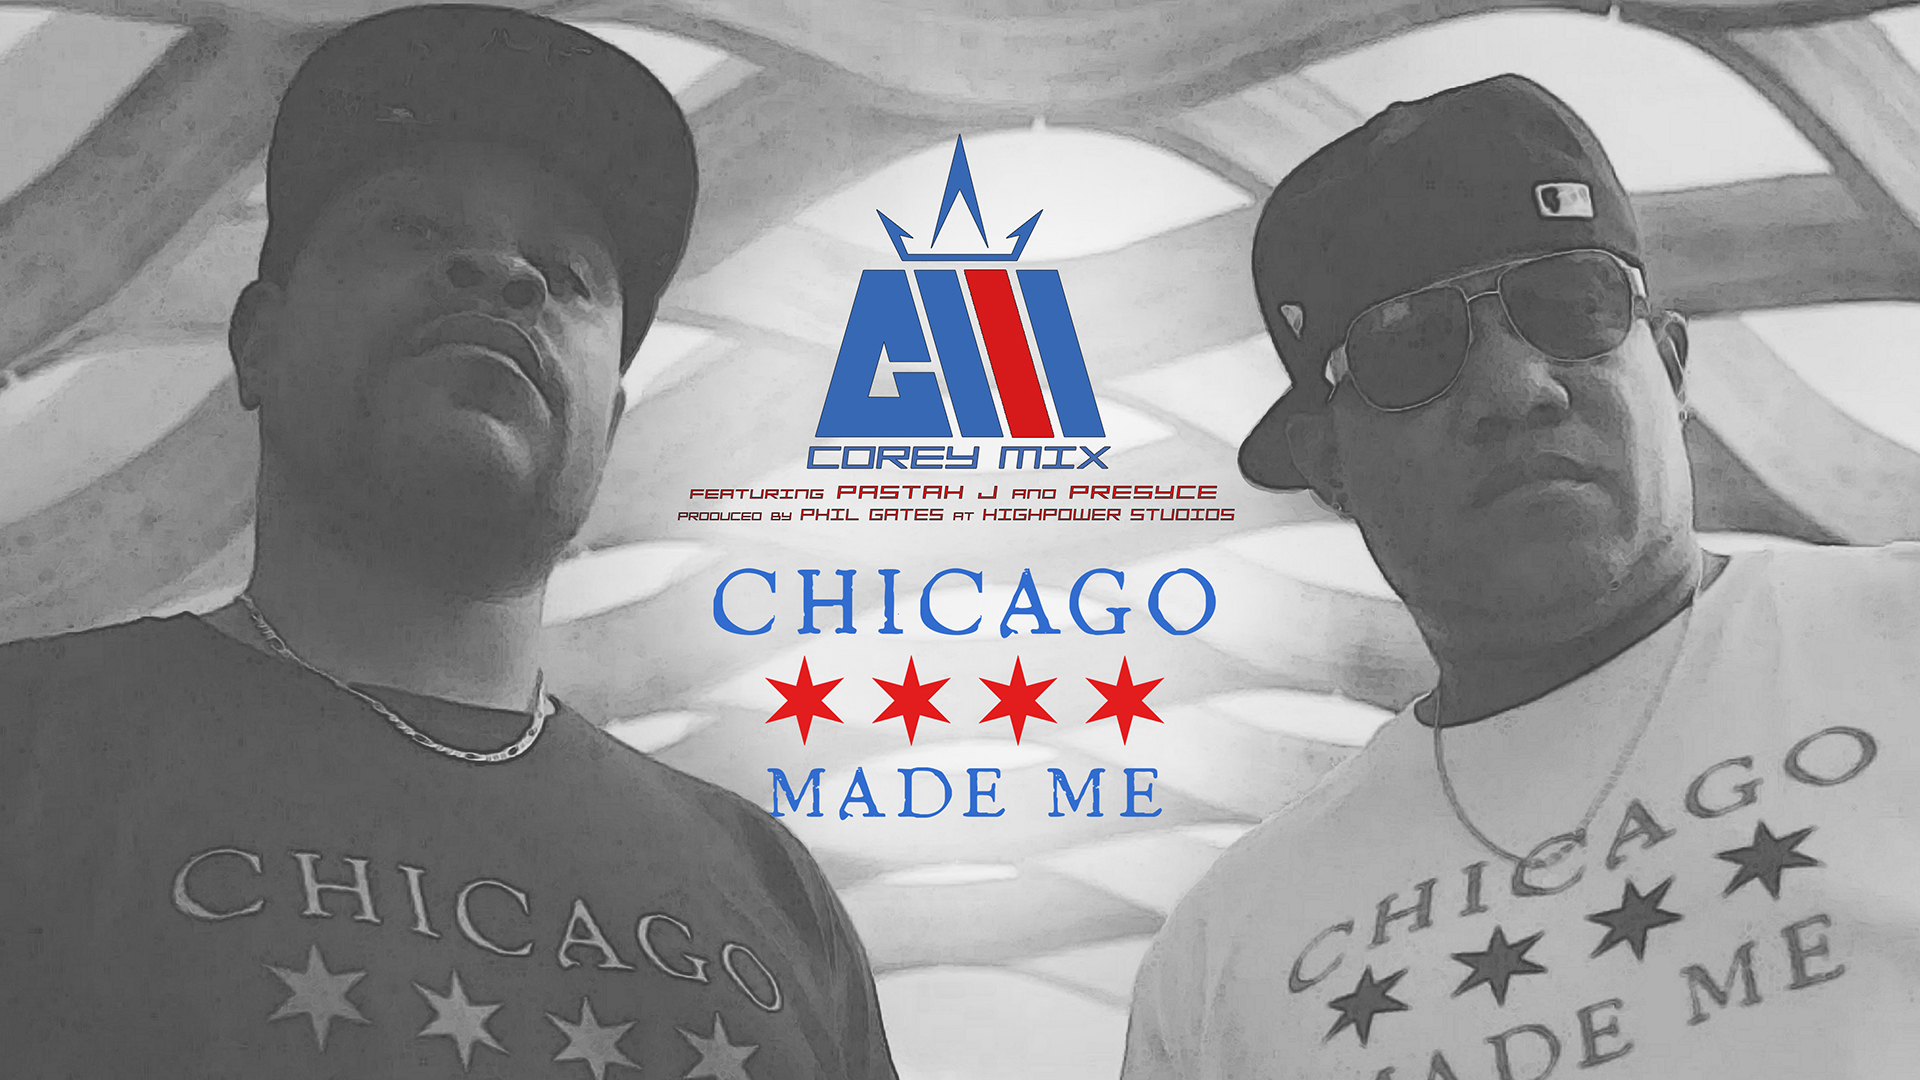 Chicago Made Me by Corey Mix featuring Pastah J & Presyce produced by Phil Gates